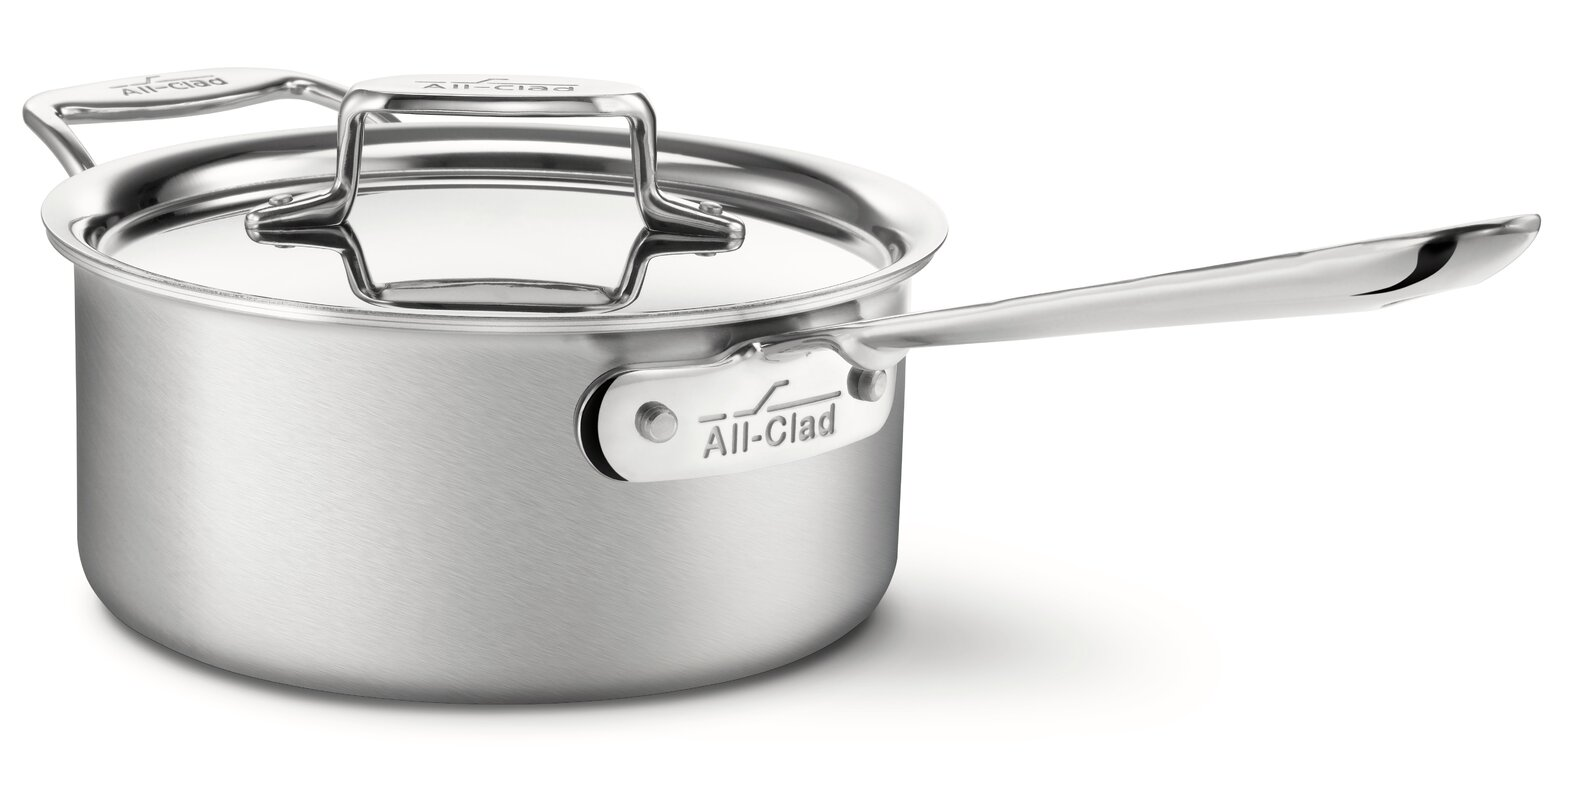 All-Clad D5 Stainless Steel Saucepan with Lid